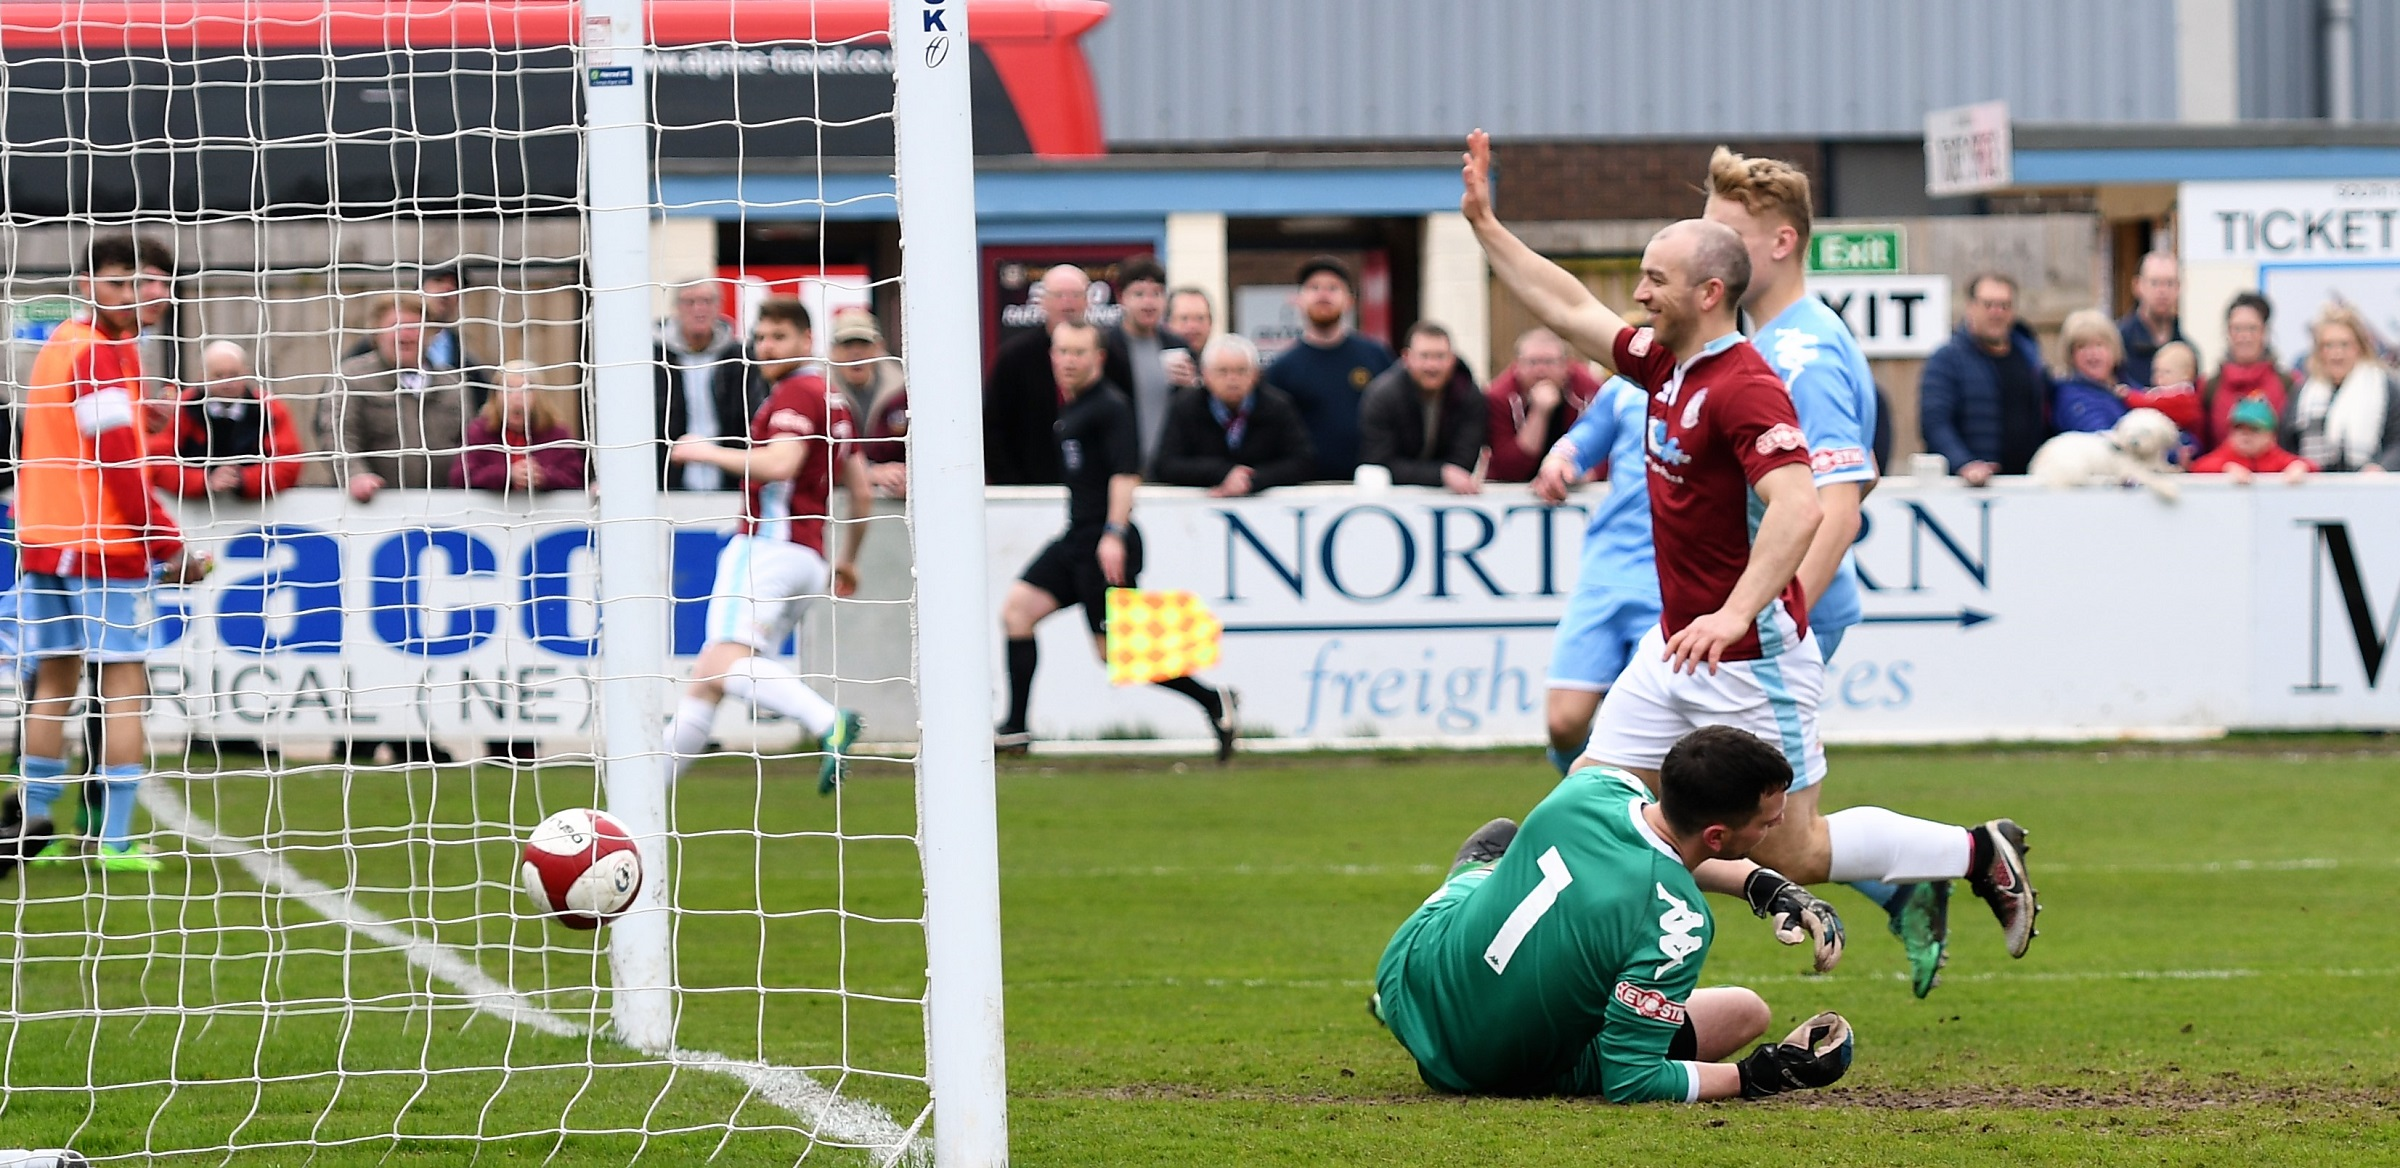 Match Preview: South Shields vs Glossop North End, Evo-Stik North